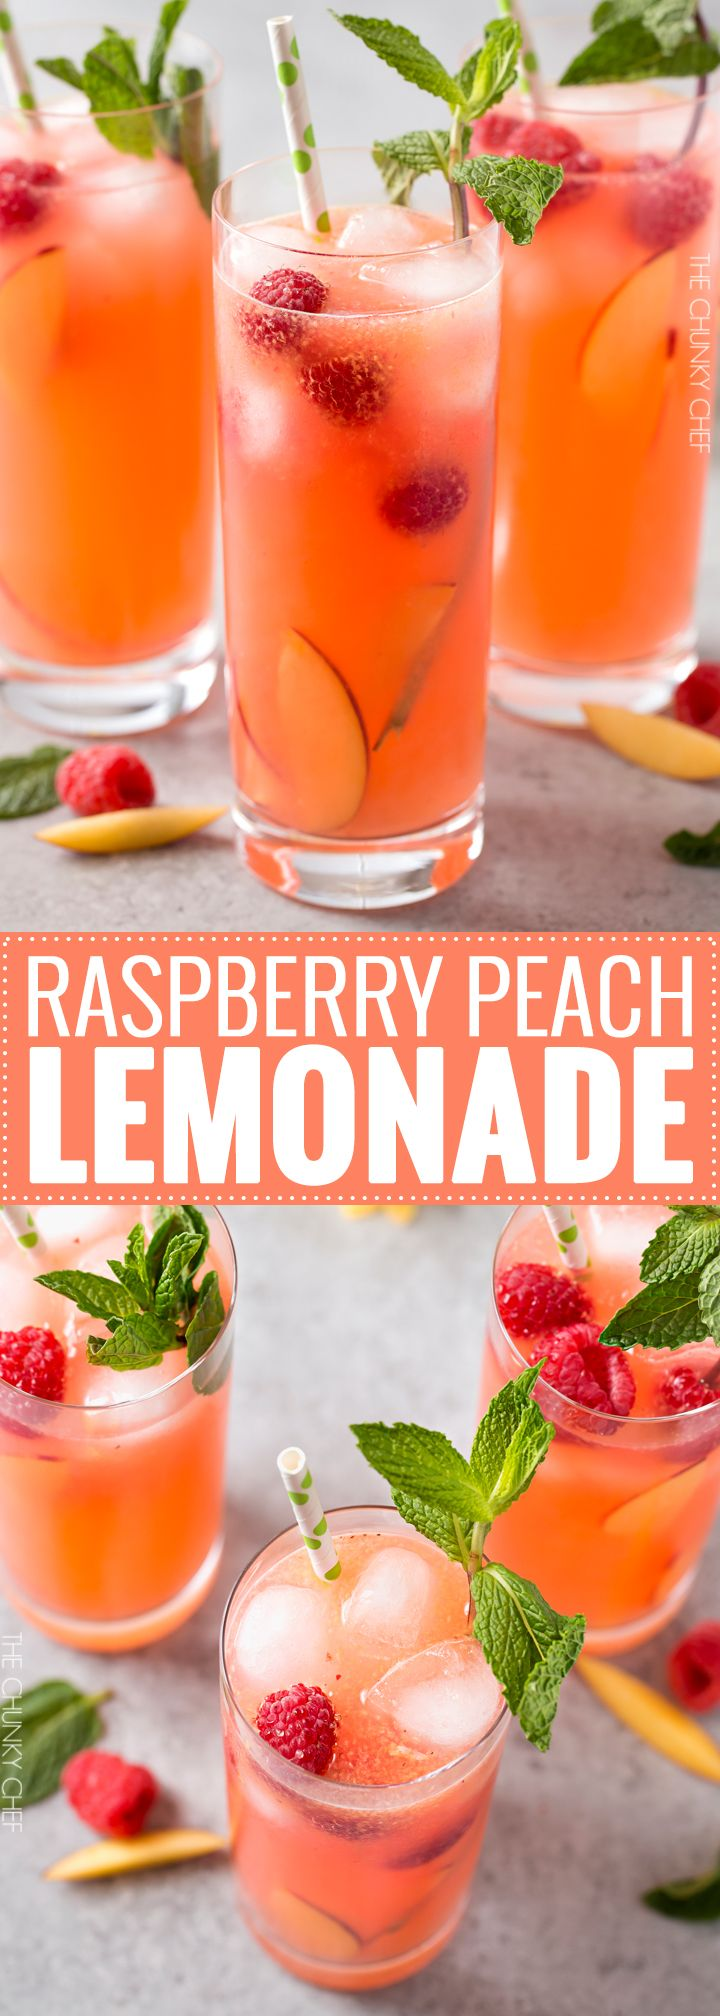 Limonade framboises pêche // Homemade Raspberry Peach Lemonade | The perfect refreshing summer drink is here! #mocktail